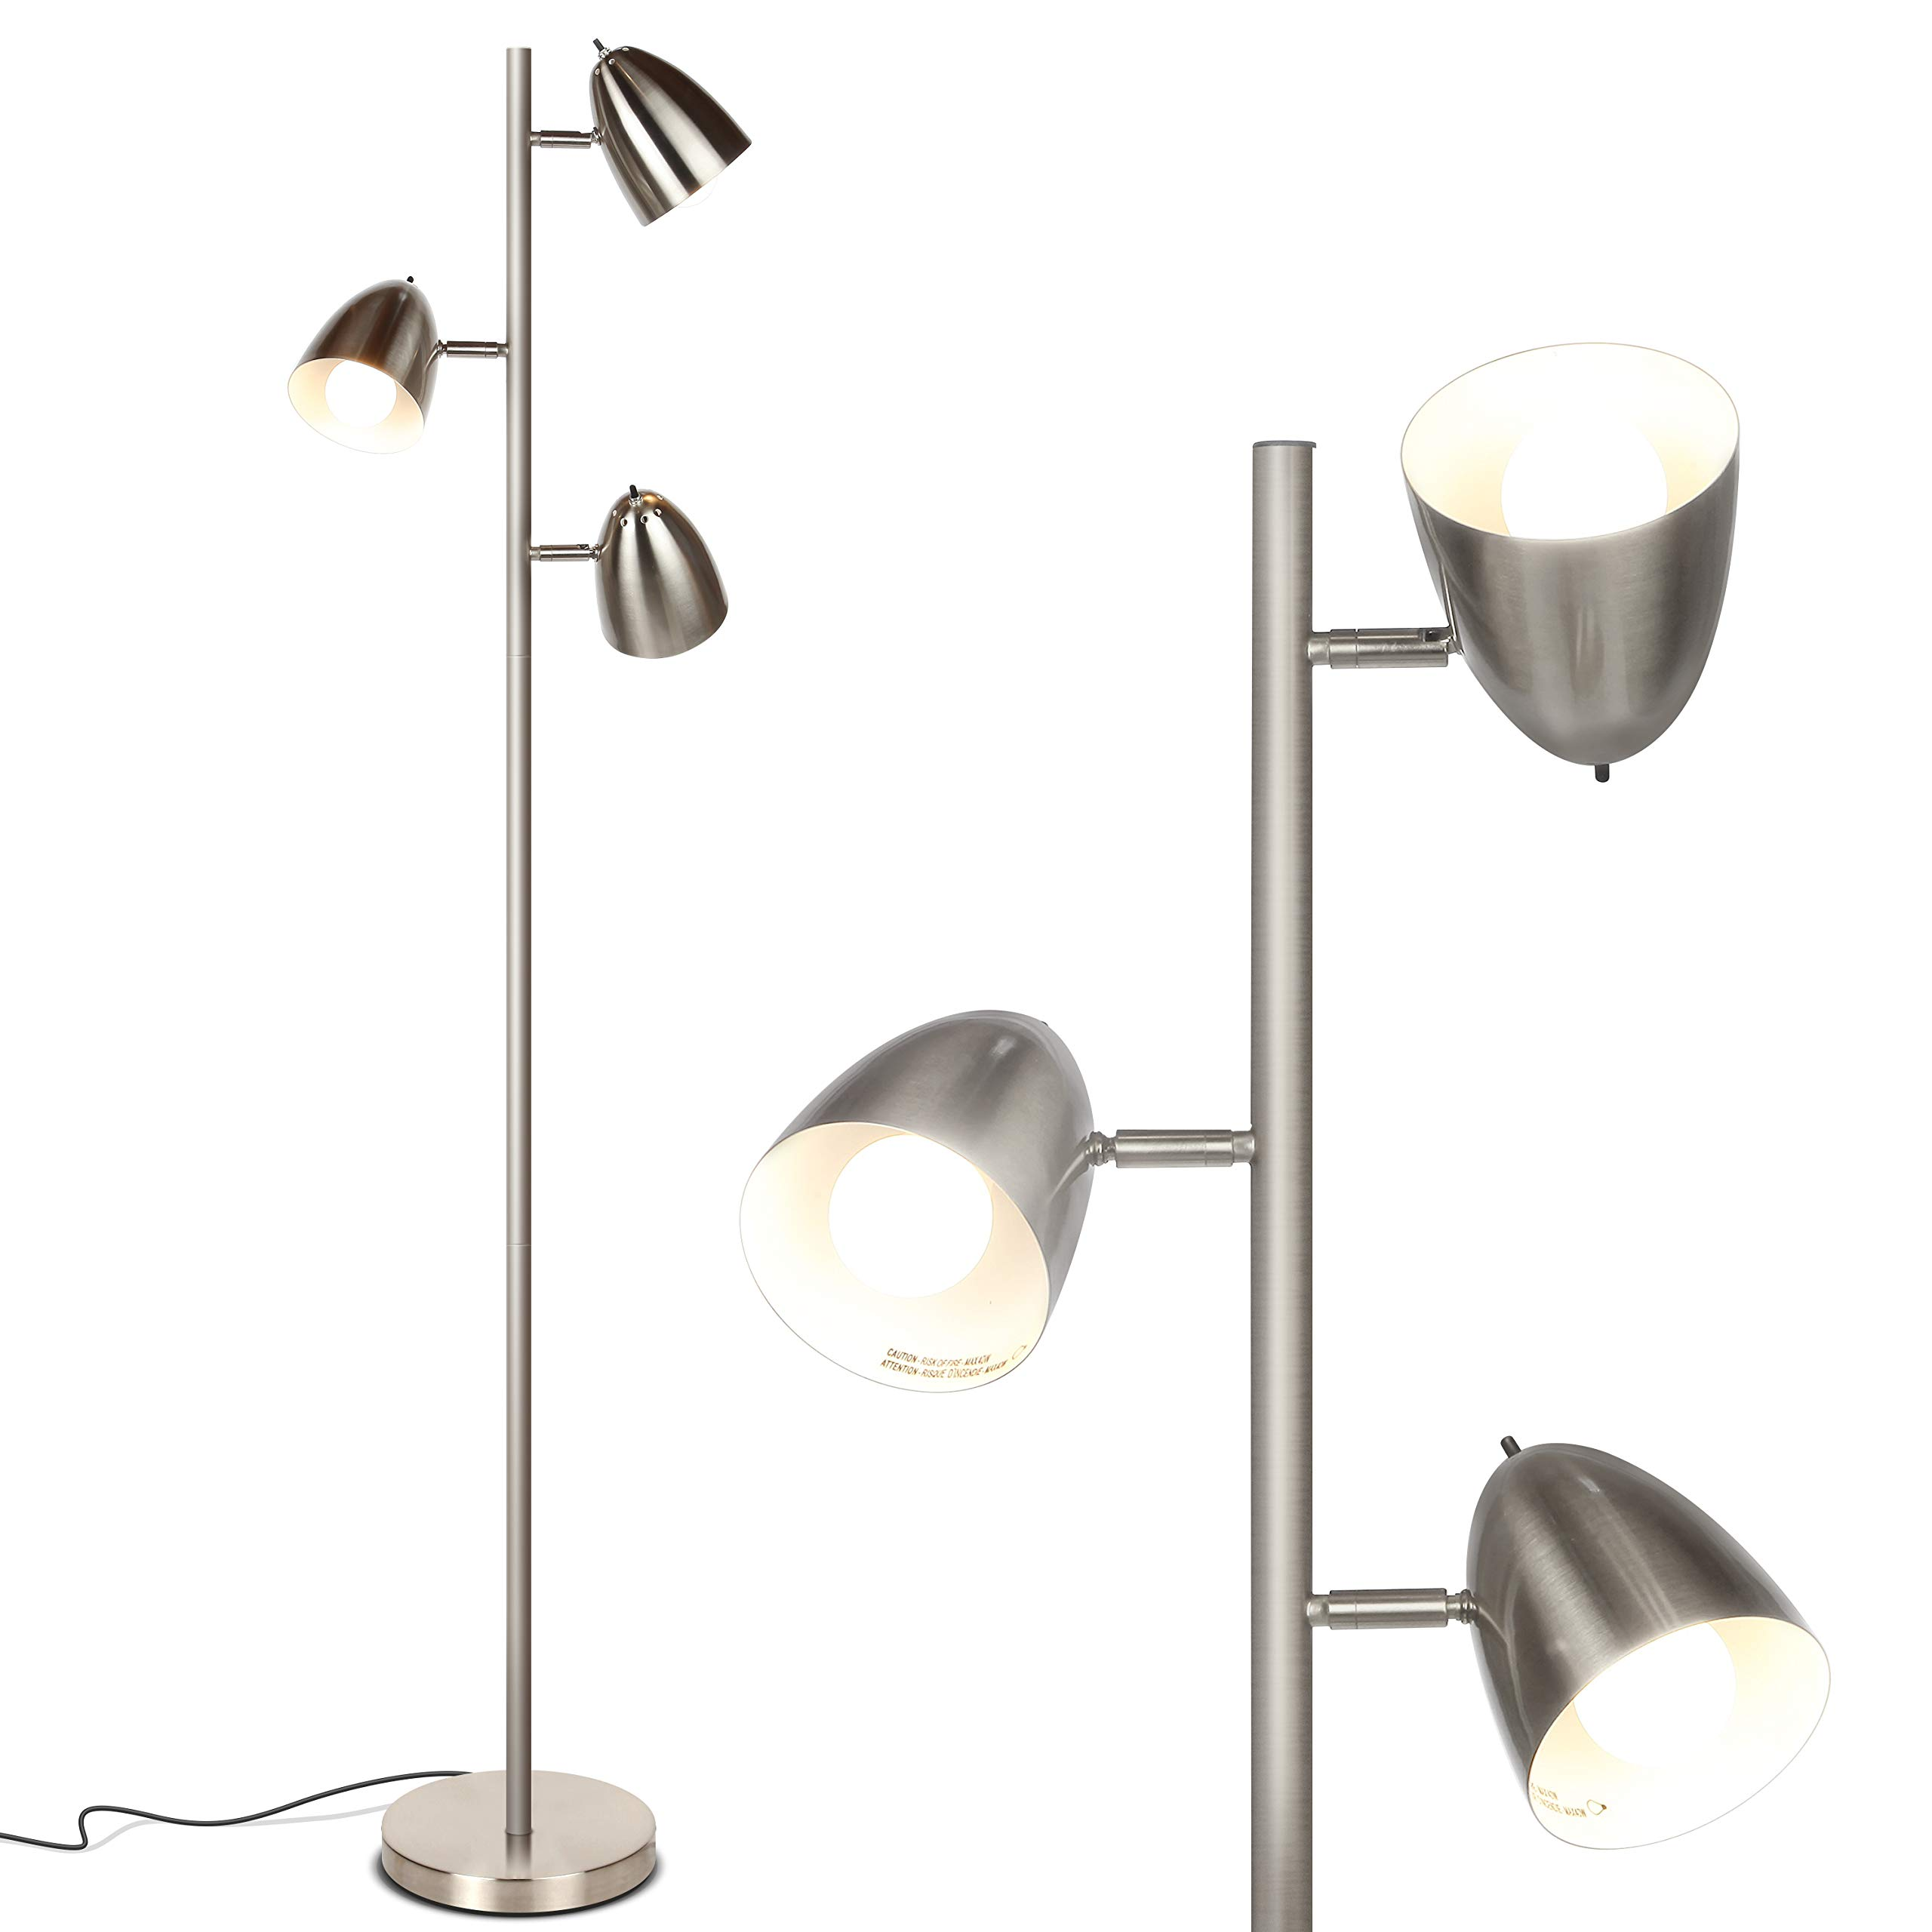 Brightech Jacob - LED Reading and Floor Lamp for Living Rooms & Bedrooms - Classy, Mid Century Modern Adjustable 3 Light Tree - Standing Tall Pole Lamp with 3 LED Bulbs - Satin Nickel